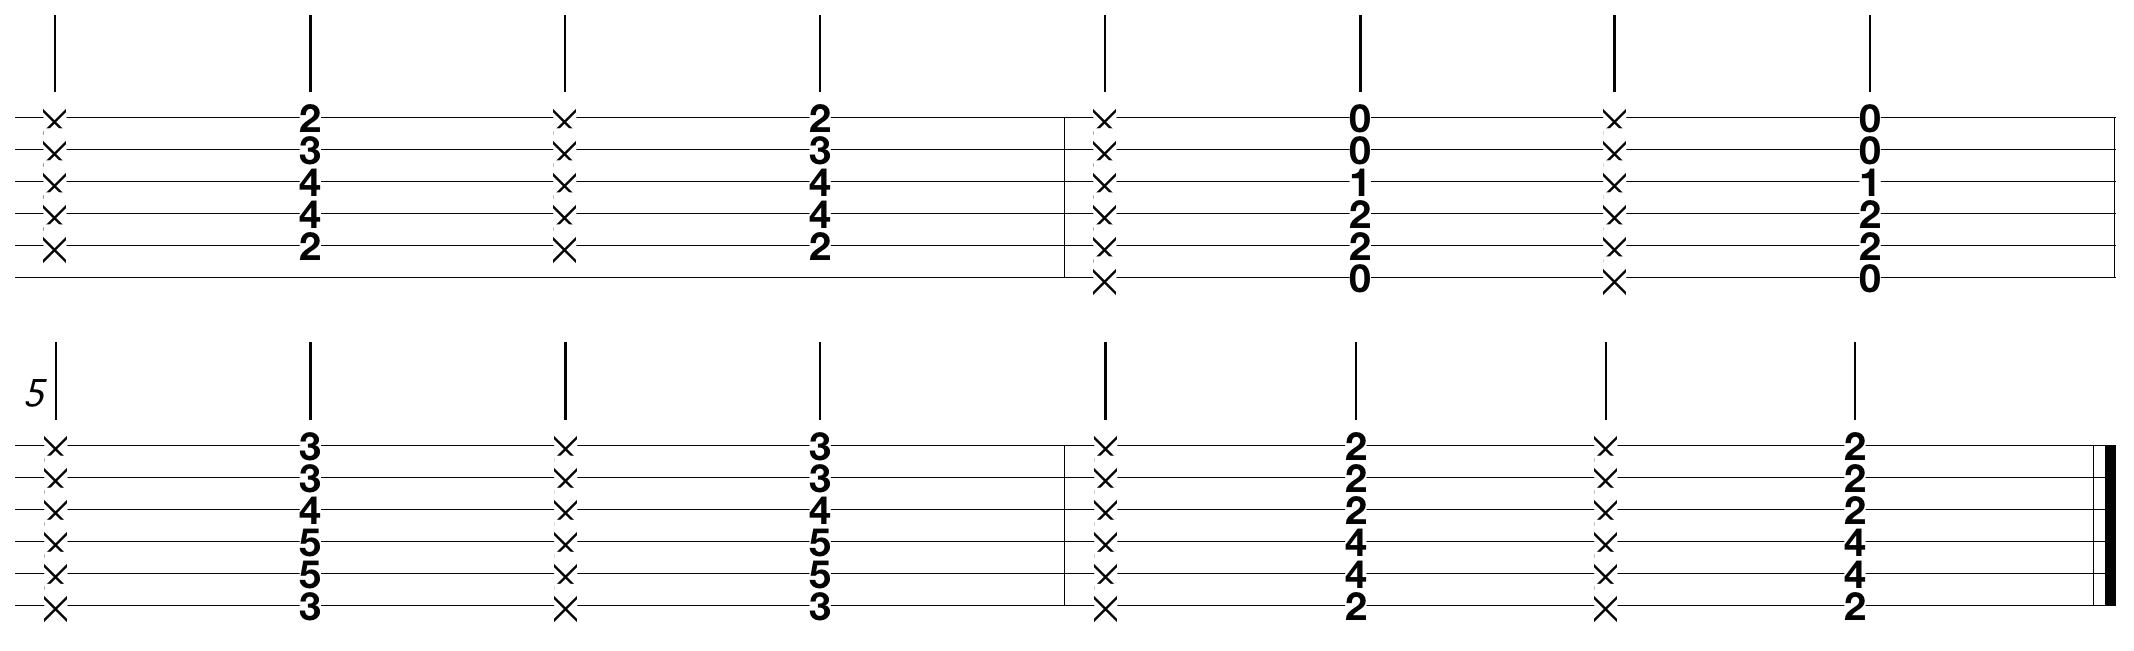 rhythm-guitar-songs_3.png